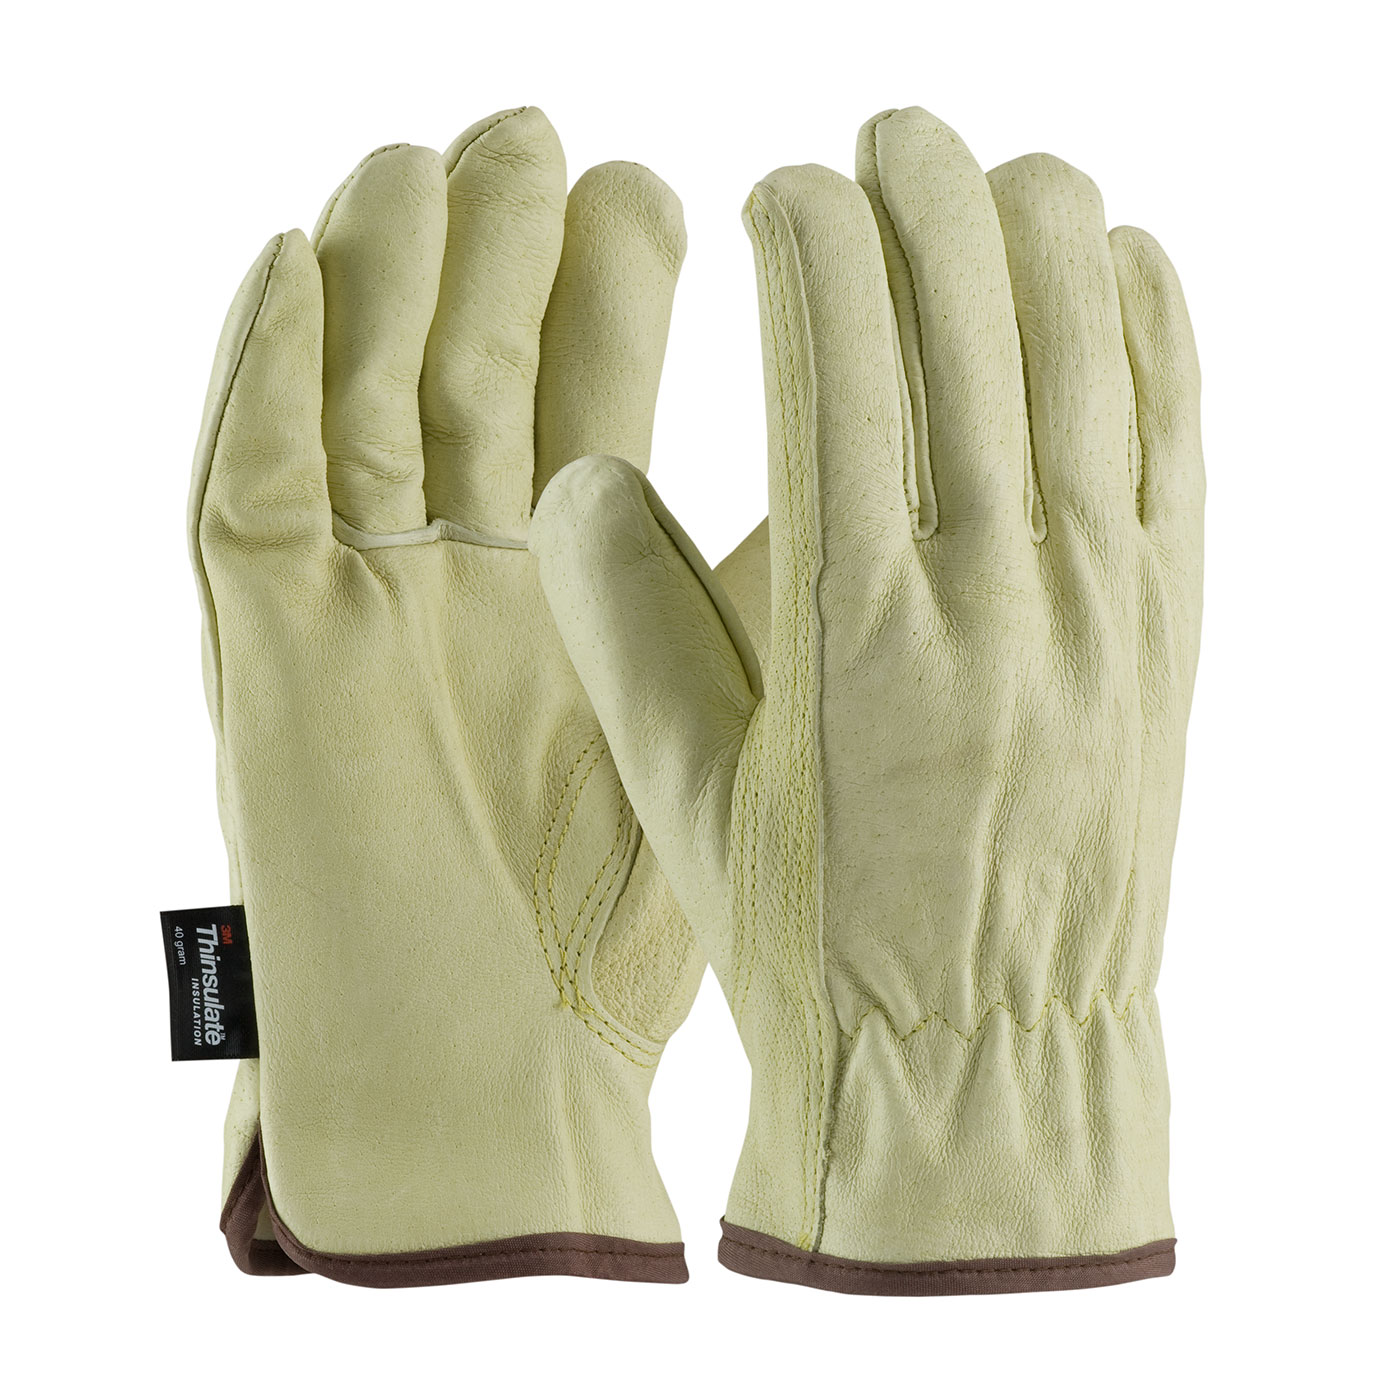 PIP® Premium Grade Top Grain Pigskin Leather Glove with 3M™ Thinsulate™ Lining - Keystone Thumb. #77-469